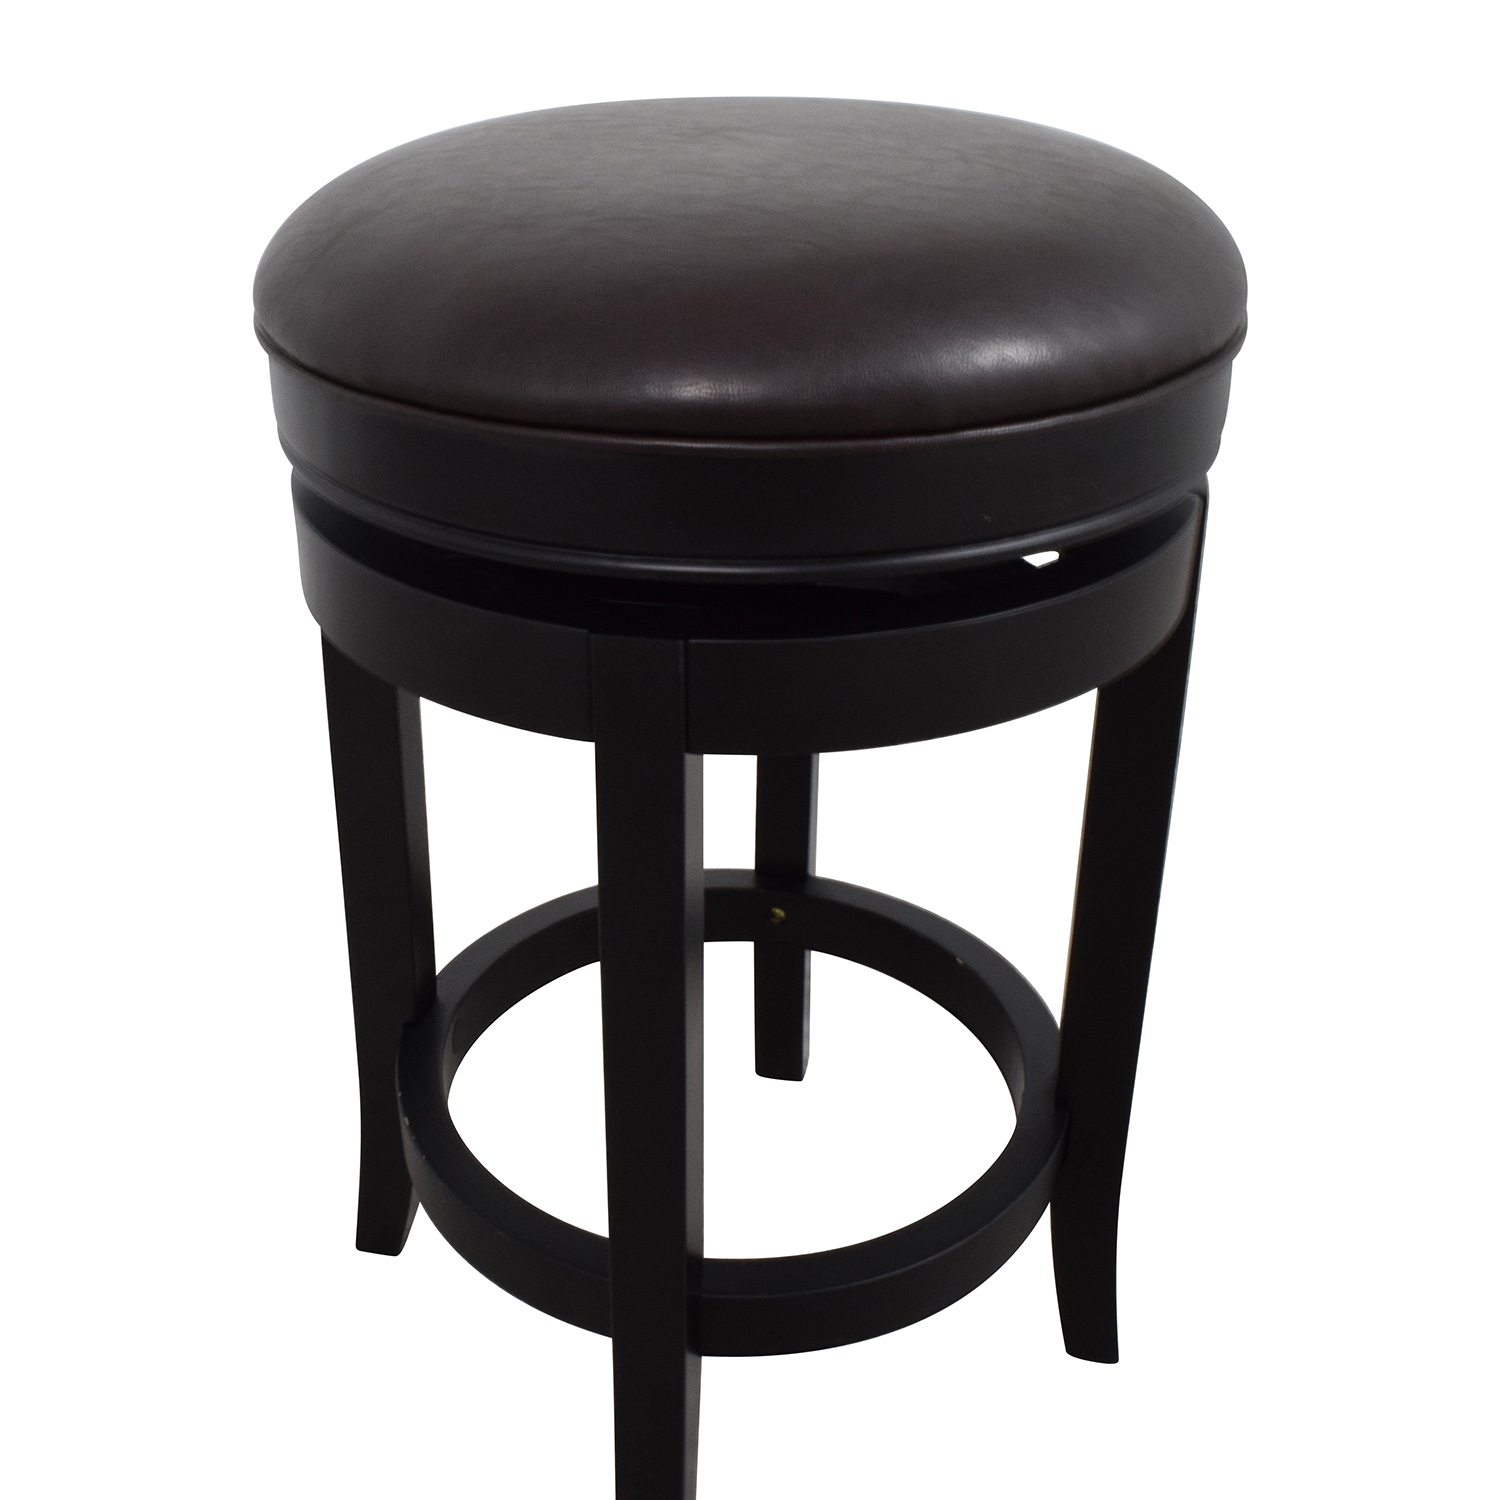 InMod Inmod Cedric Round Backless Bar Stool for sale